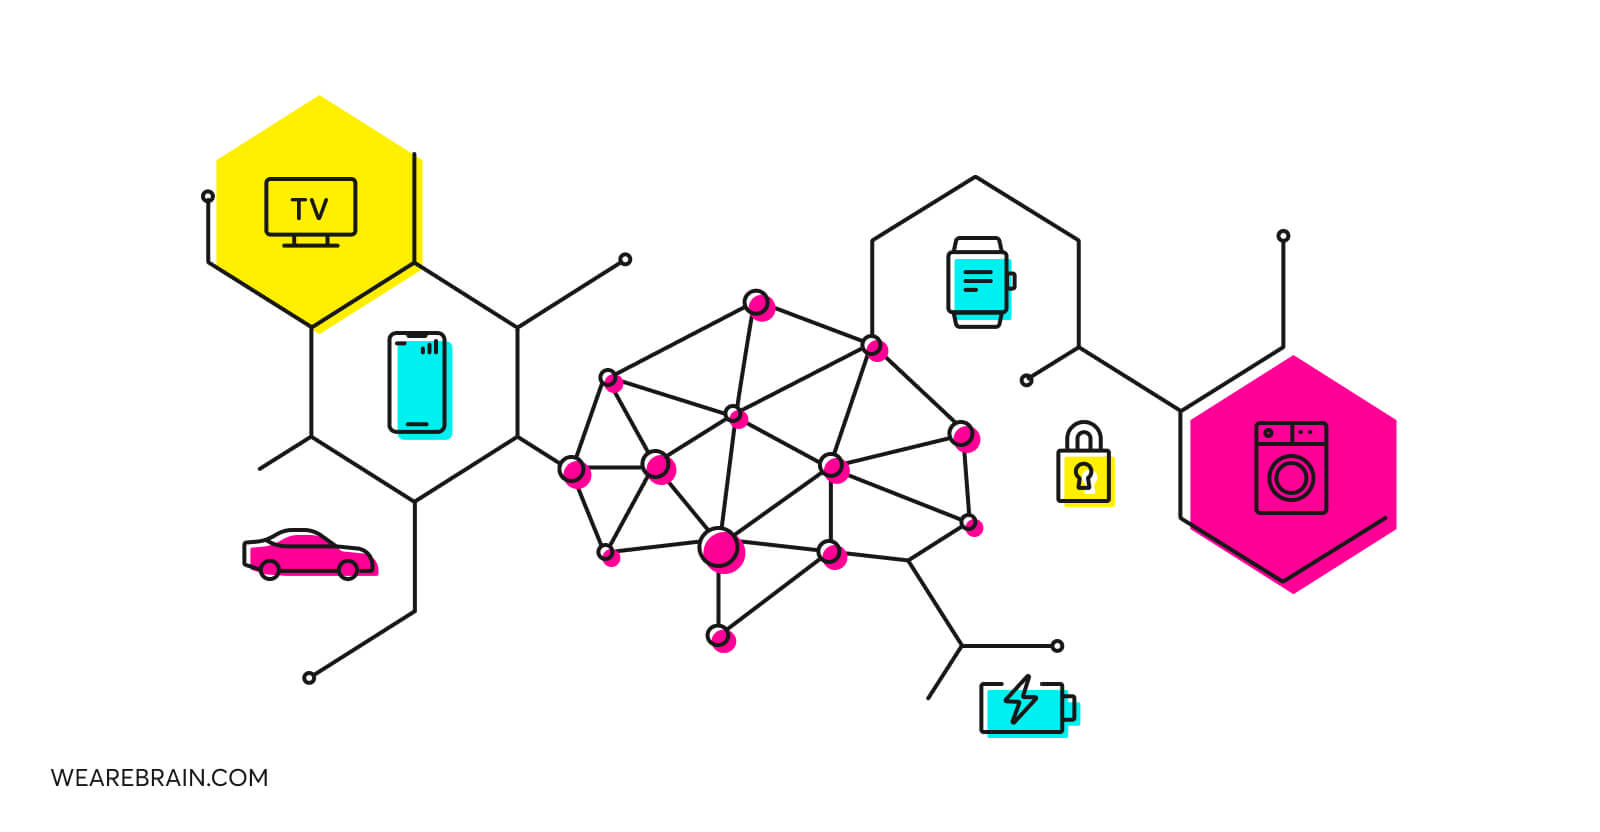 illustration about AI and IoT